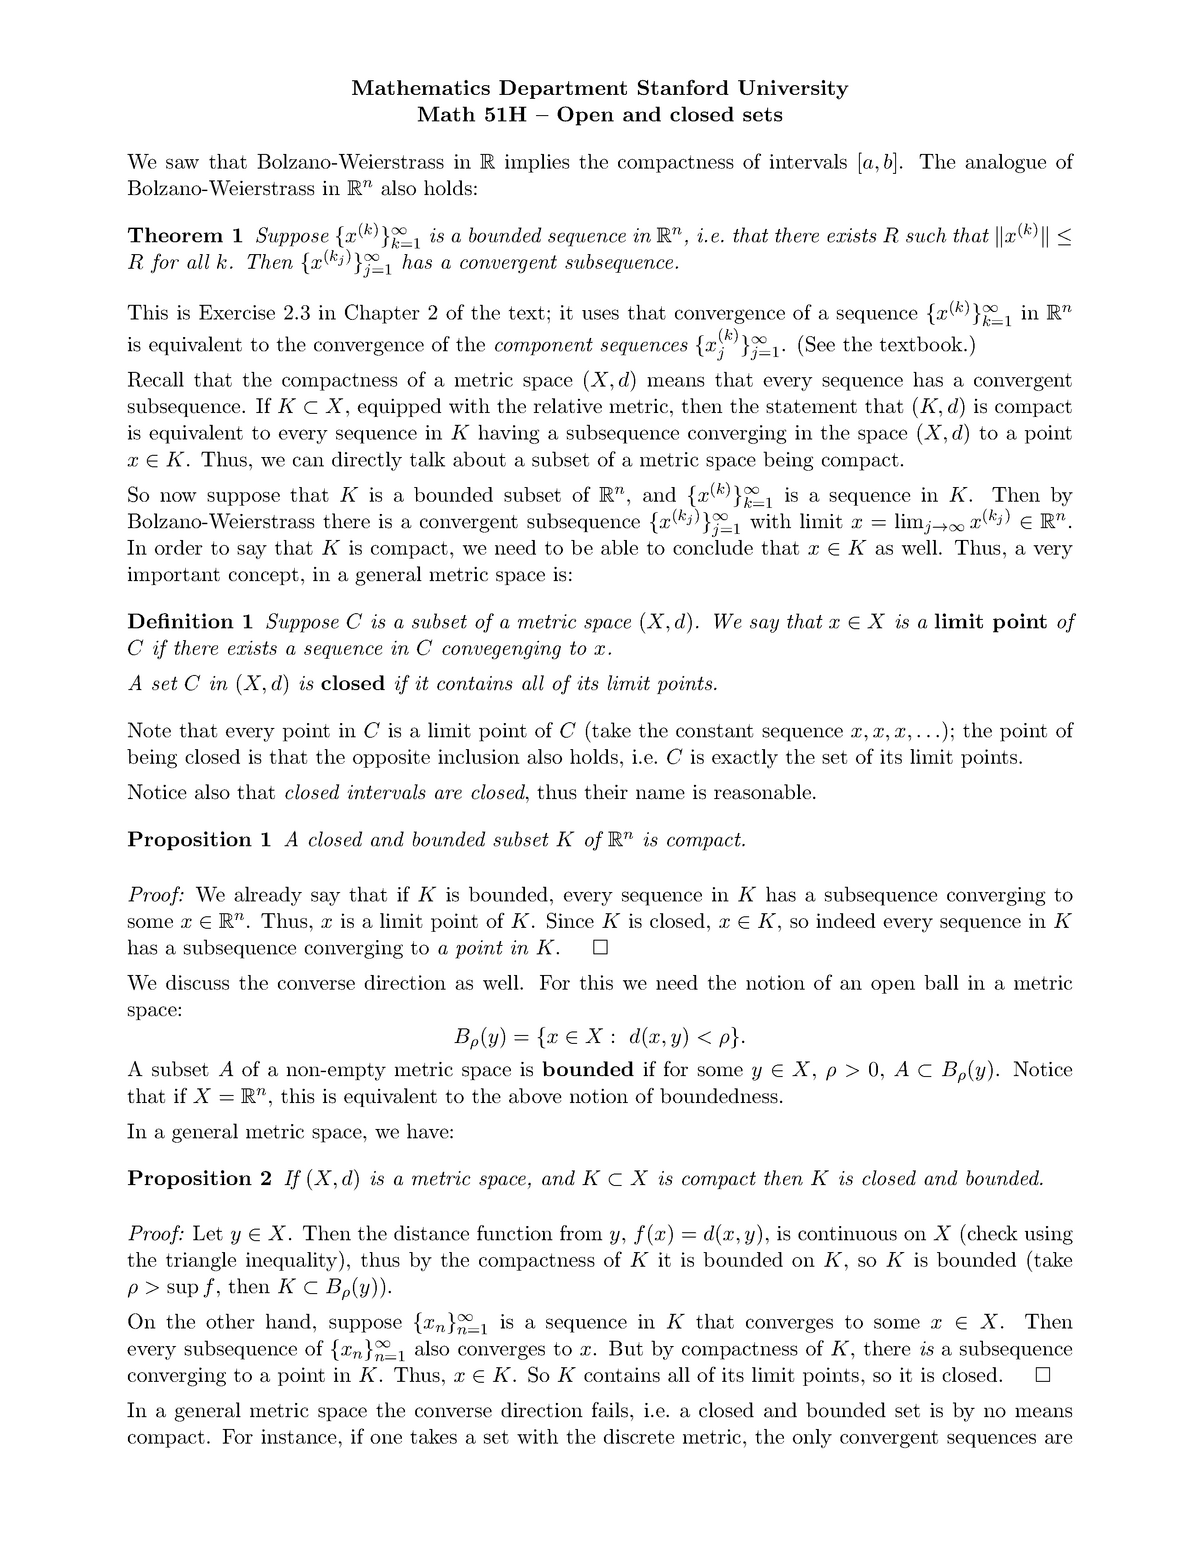 Lecture notes, lecture Open and closed sets - MATH 51H - StuDocu